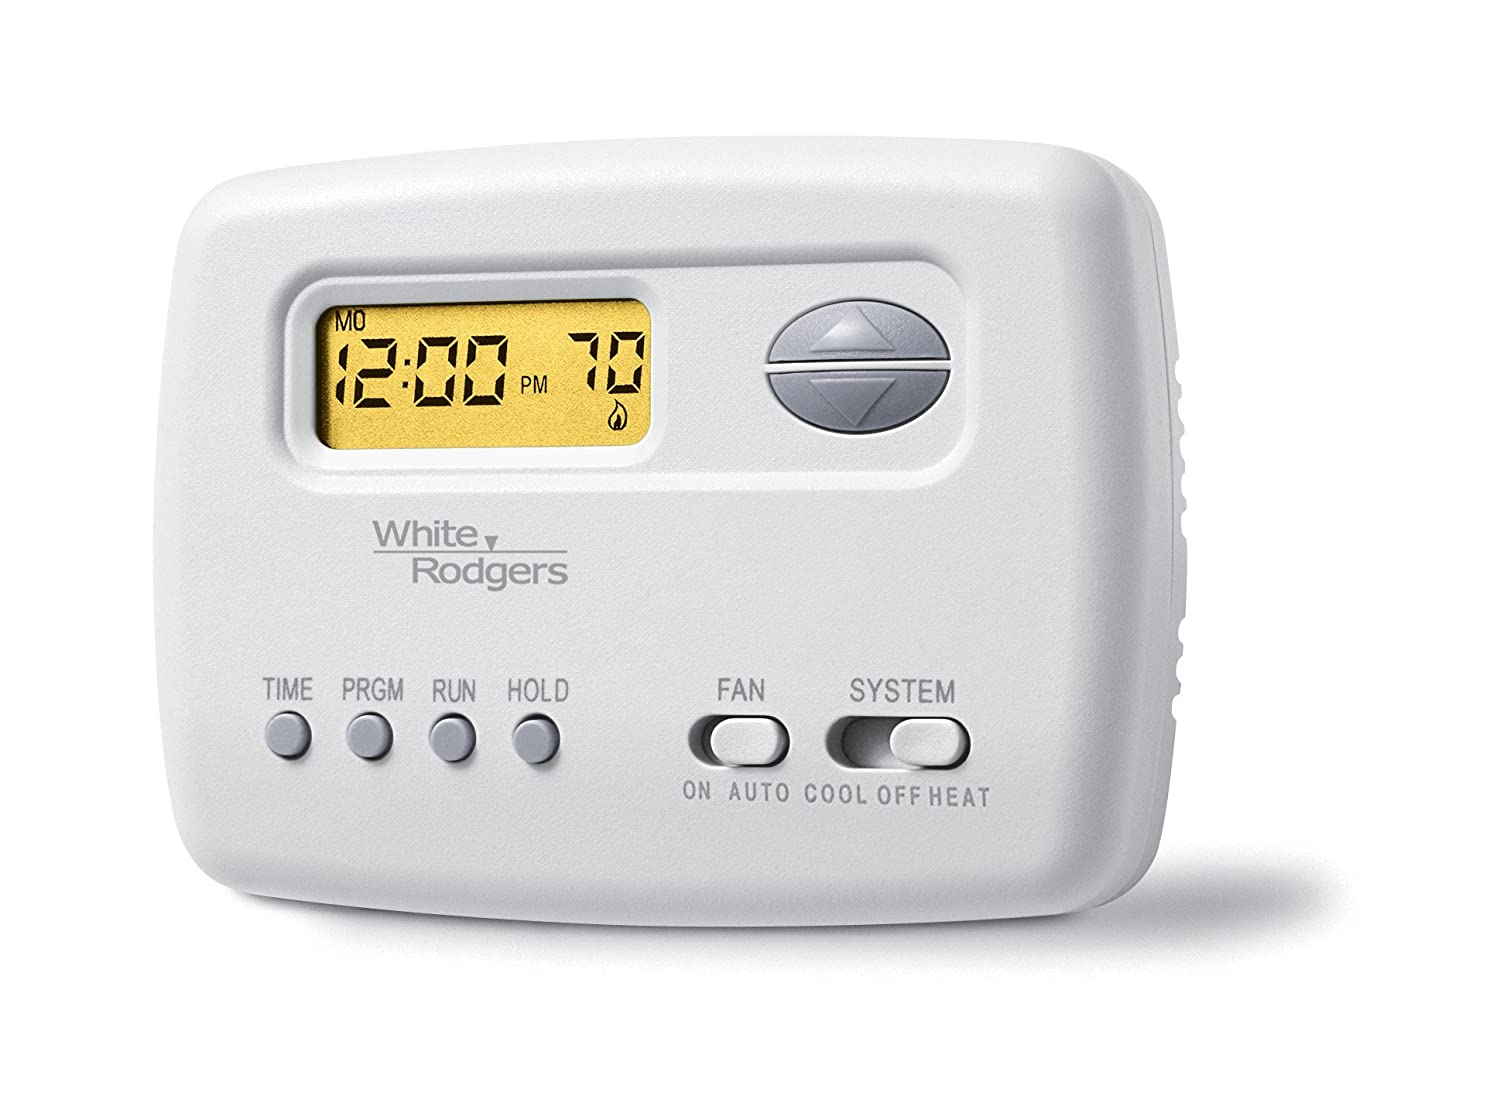 White Rodgers Thermostat Wiring Diagram in addition Best Programmable Thermostat Reviews also 1F78 151 together with White Rodgers Thermostat Manual 1f80 as well 30015. on 1f78 151